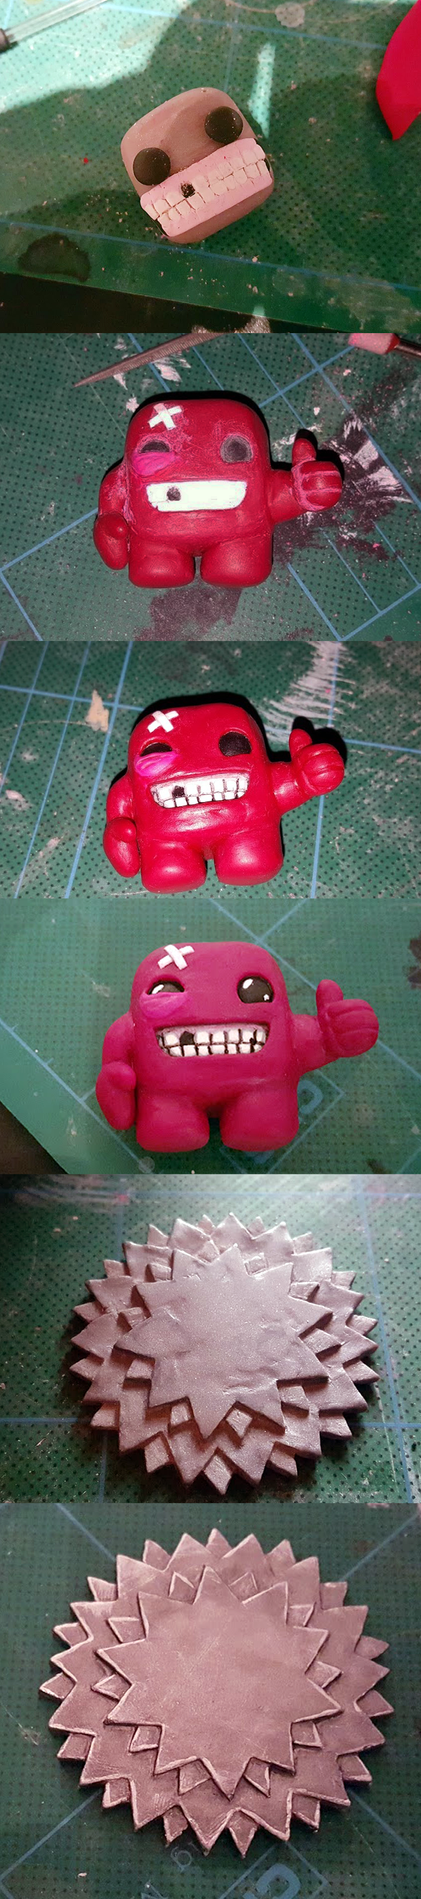 Super Meat Boy step by step by GuenhyKitten